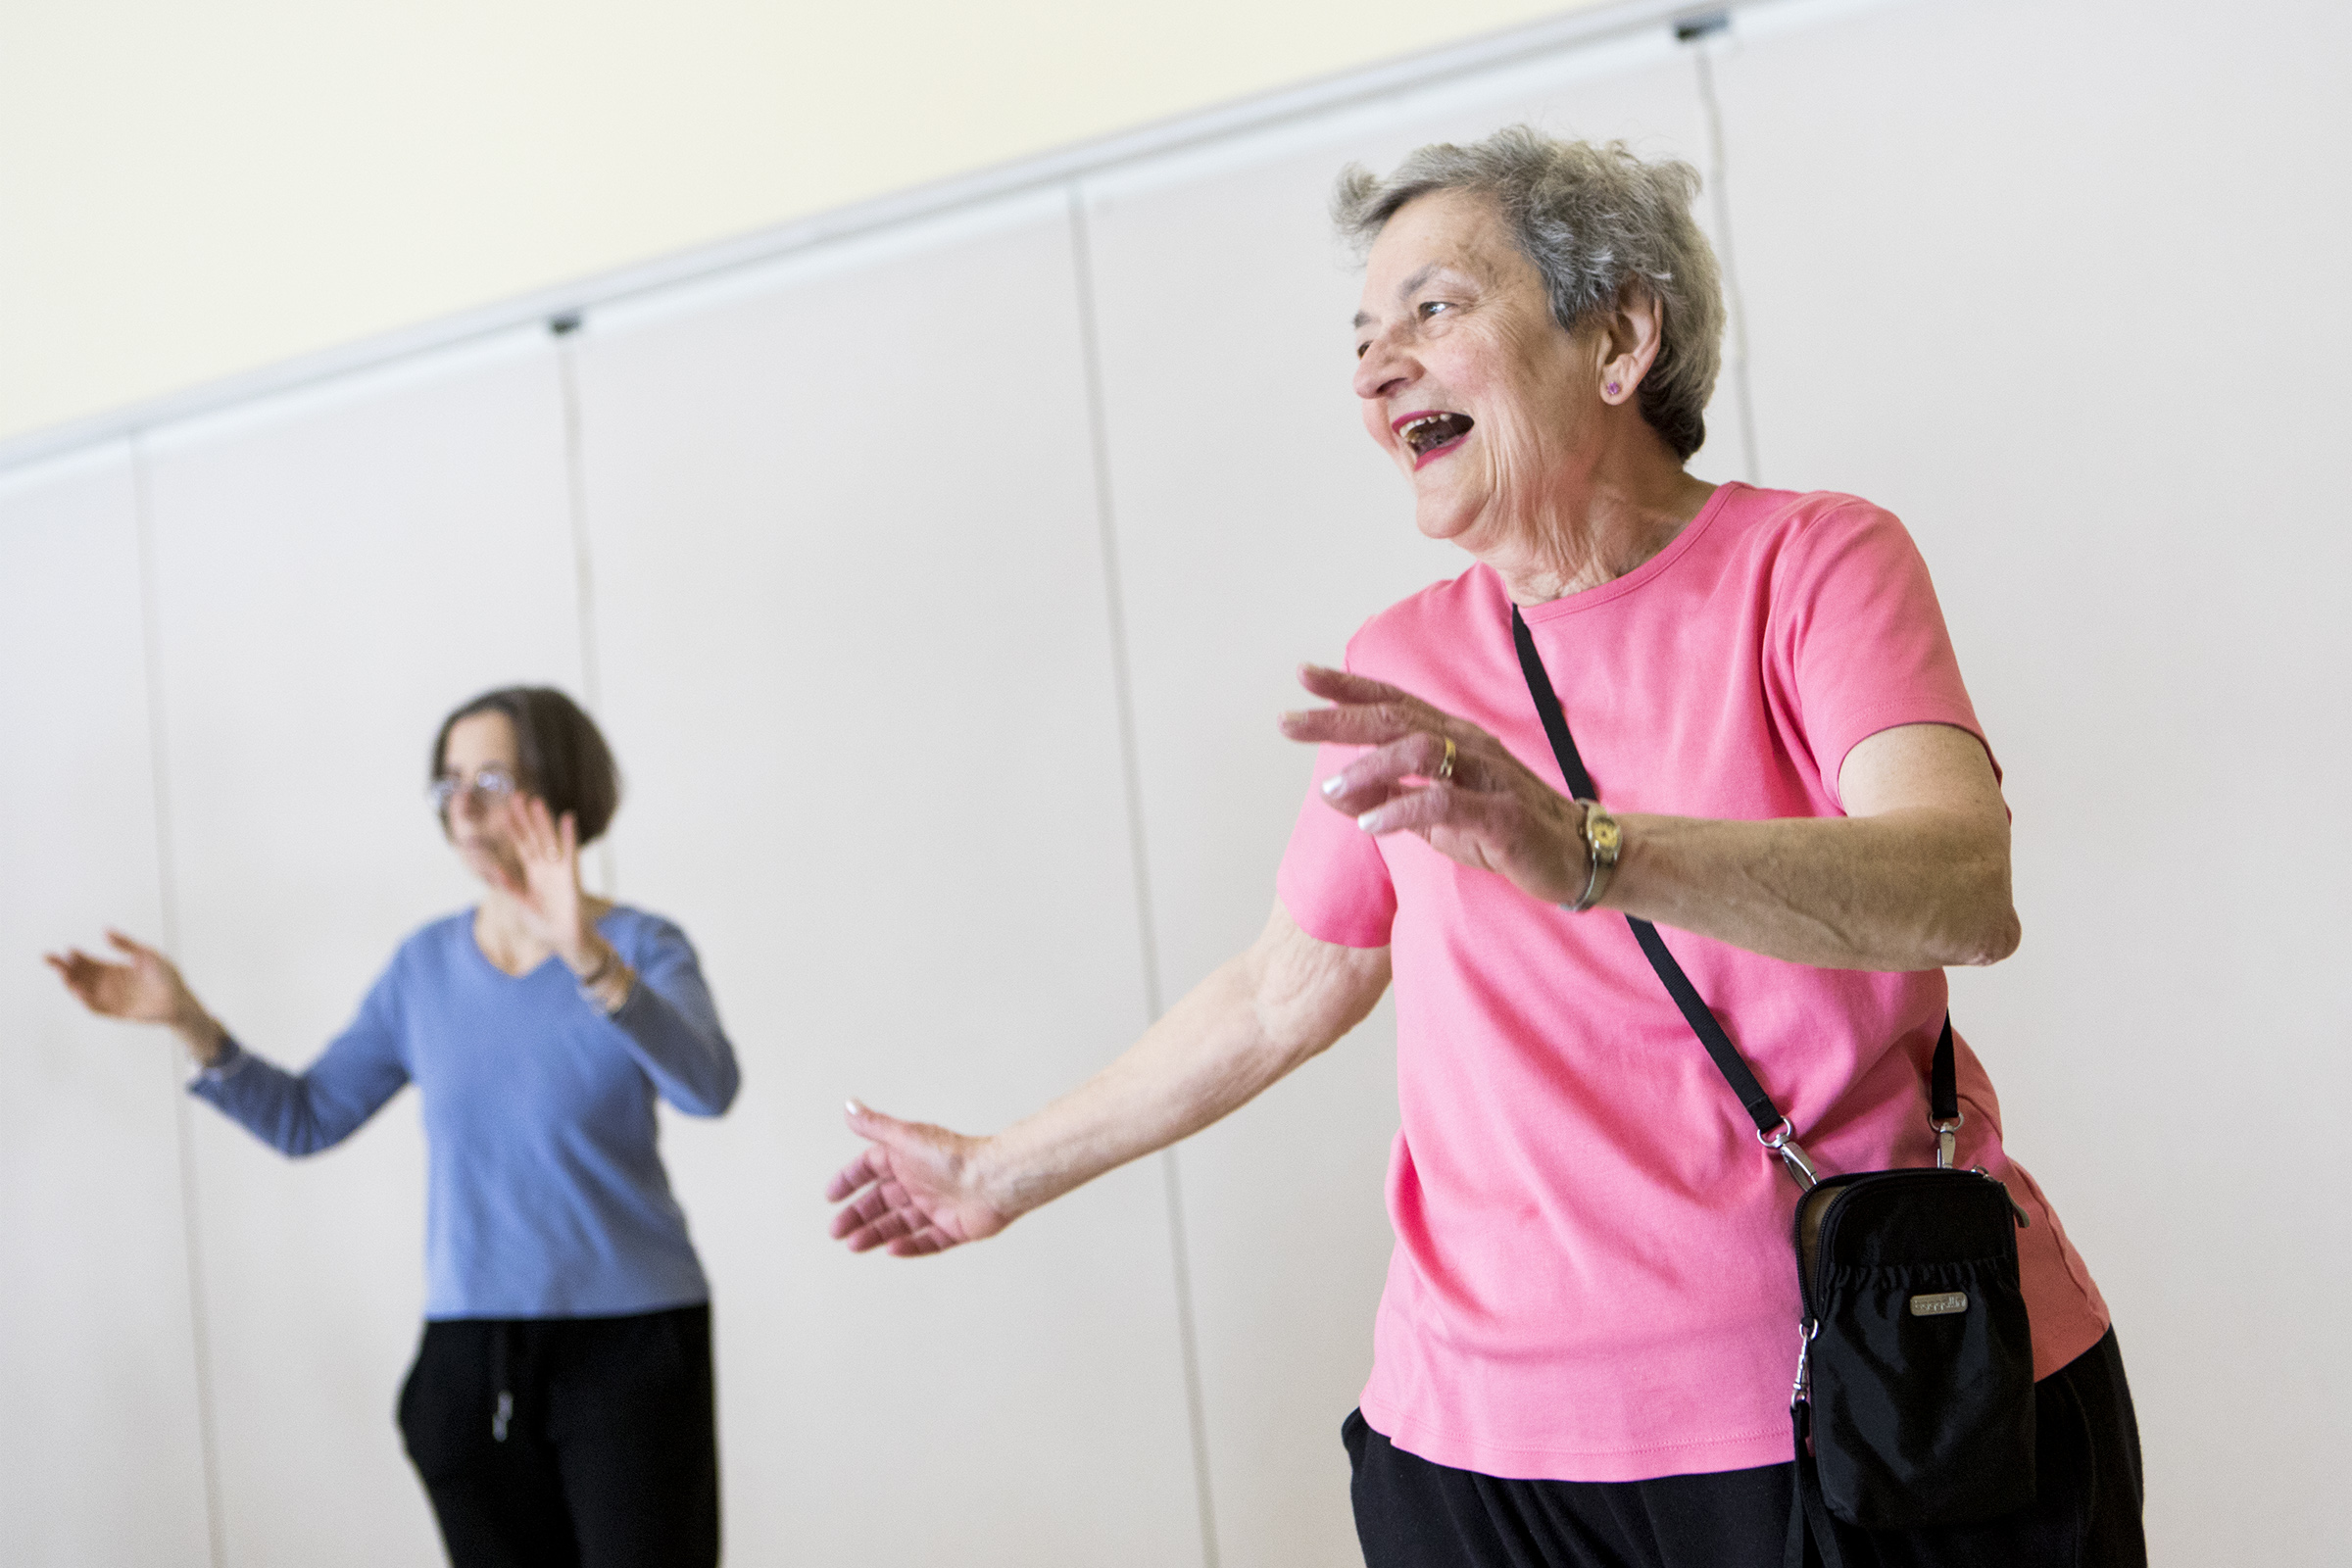 Liz Keegan, of Belmont, right, dances during the Council on Aging's Zumba class at Beech Street Center in Belmont on Feb. 21, 2019.